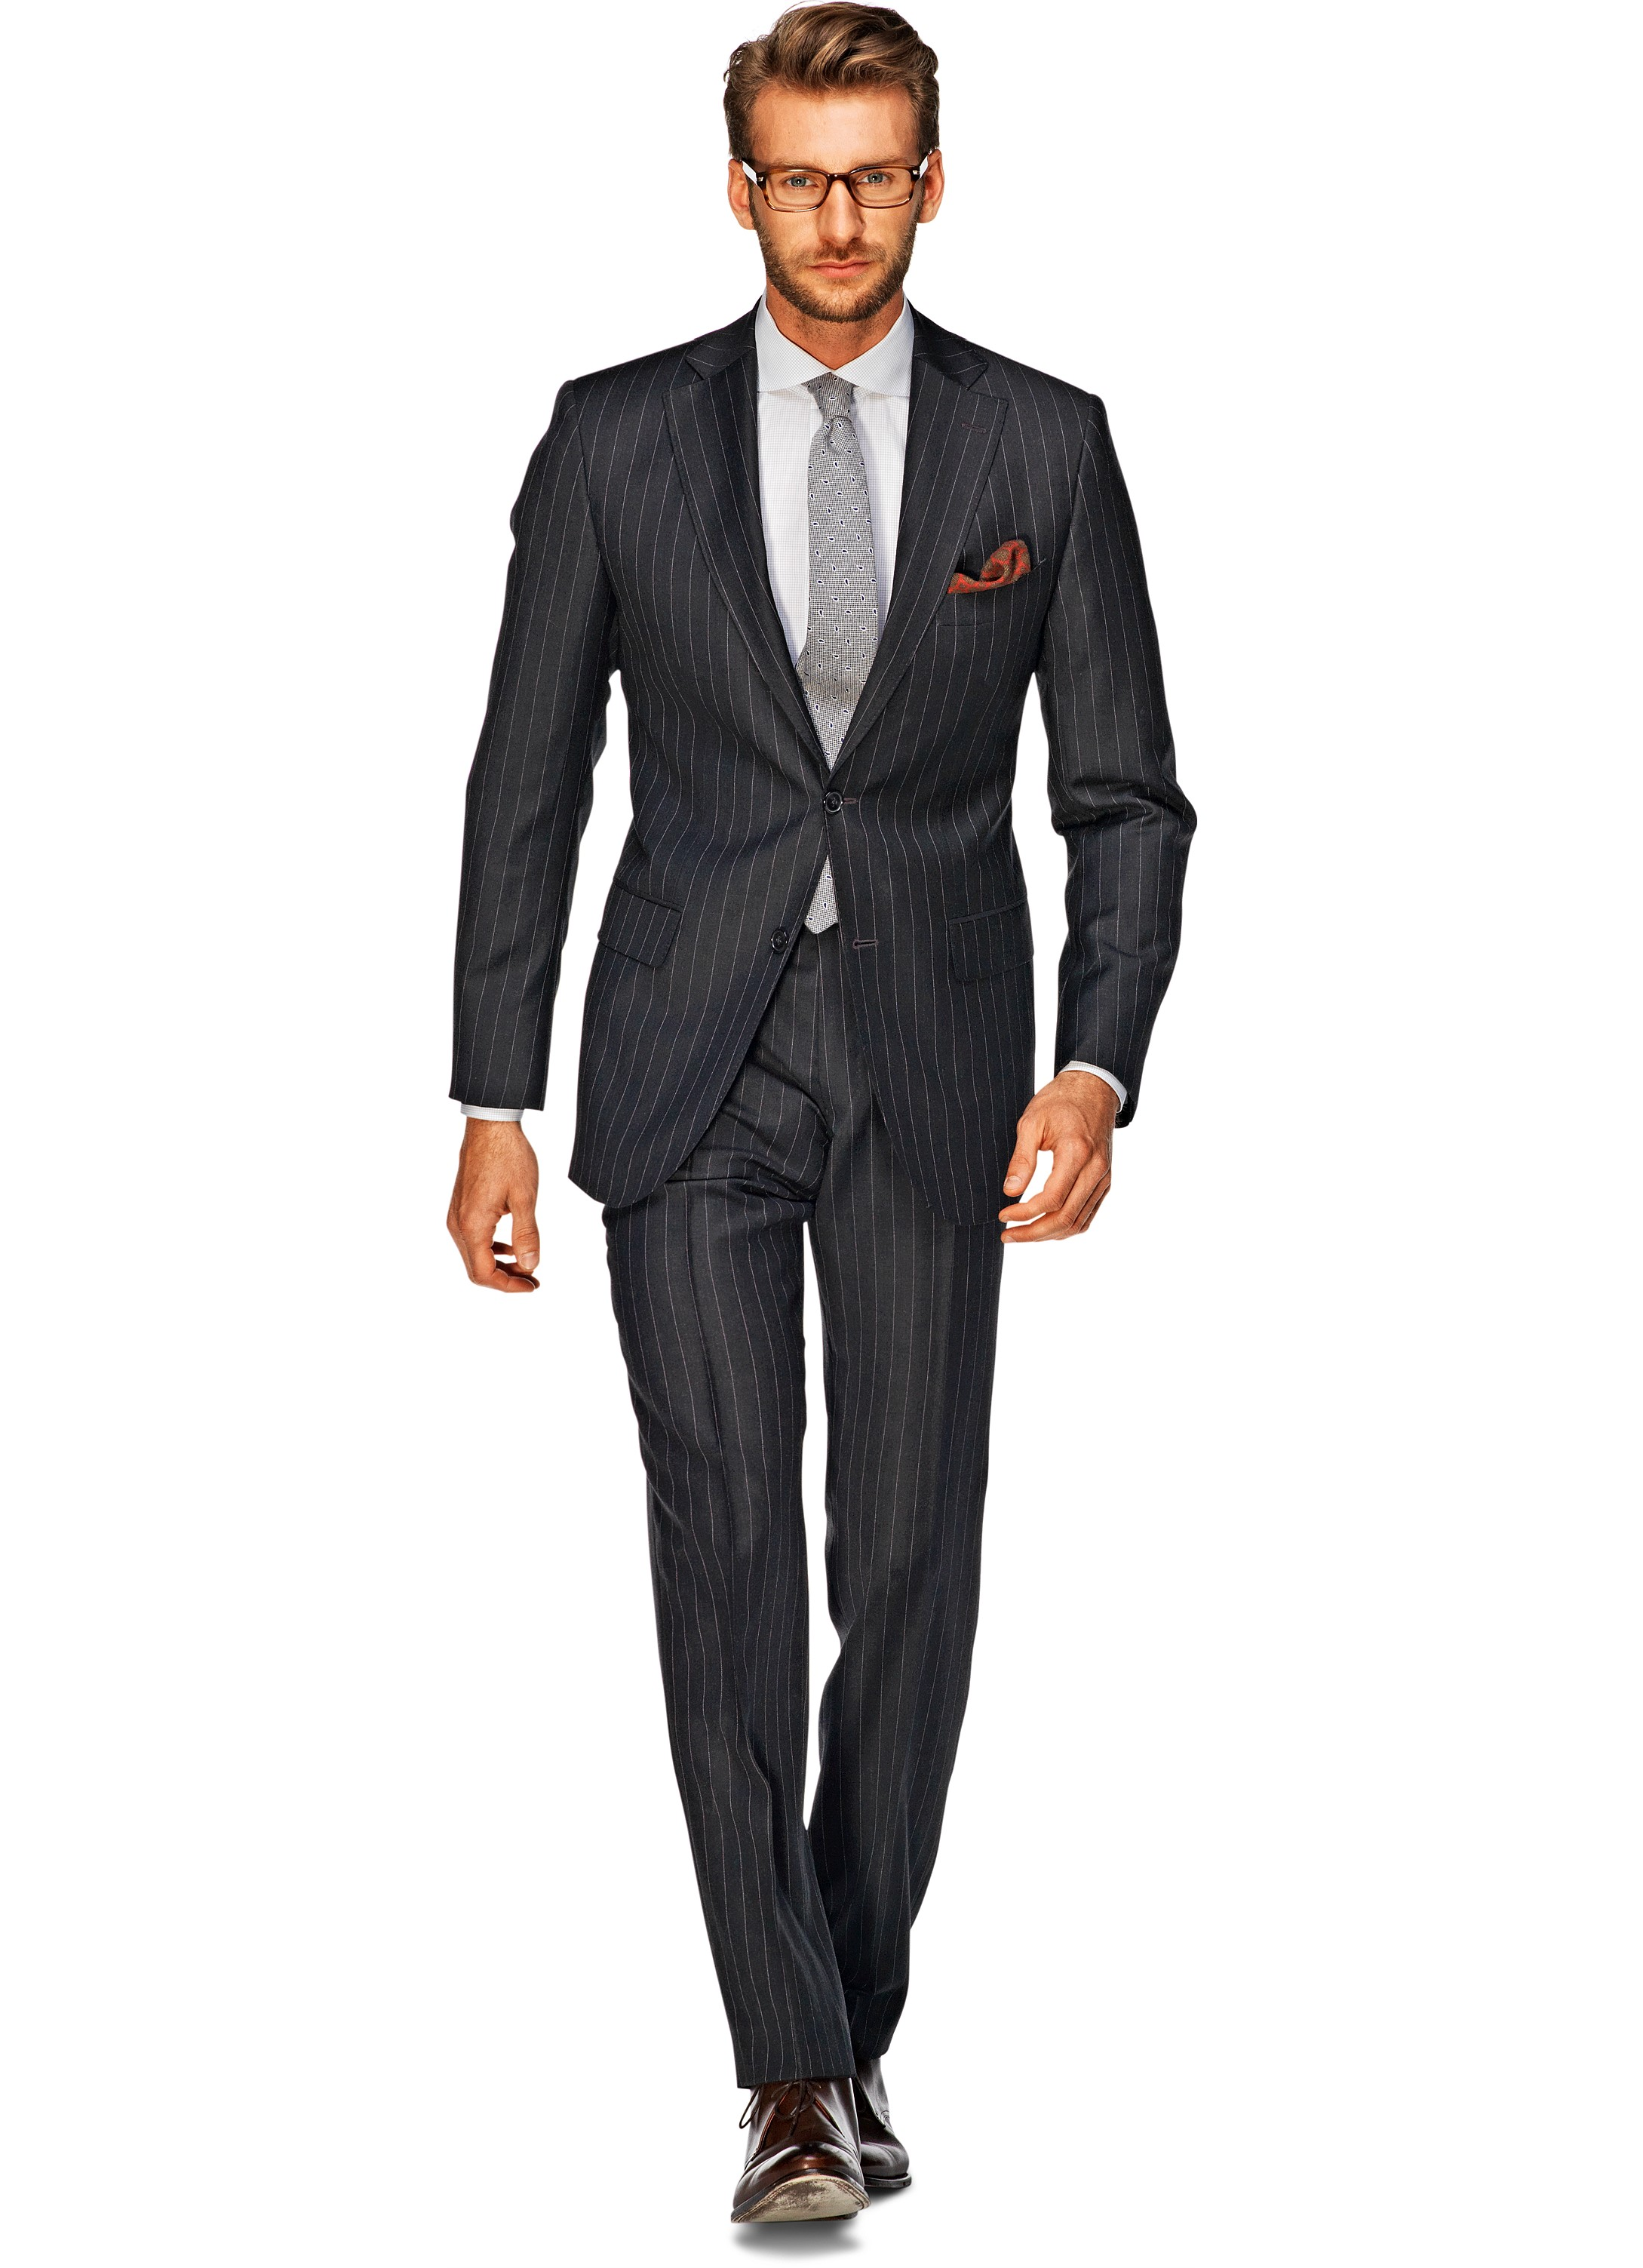 Dark grey suit what colour shirt go suits for Charcoal suit shirt tie combinations